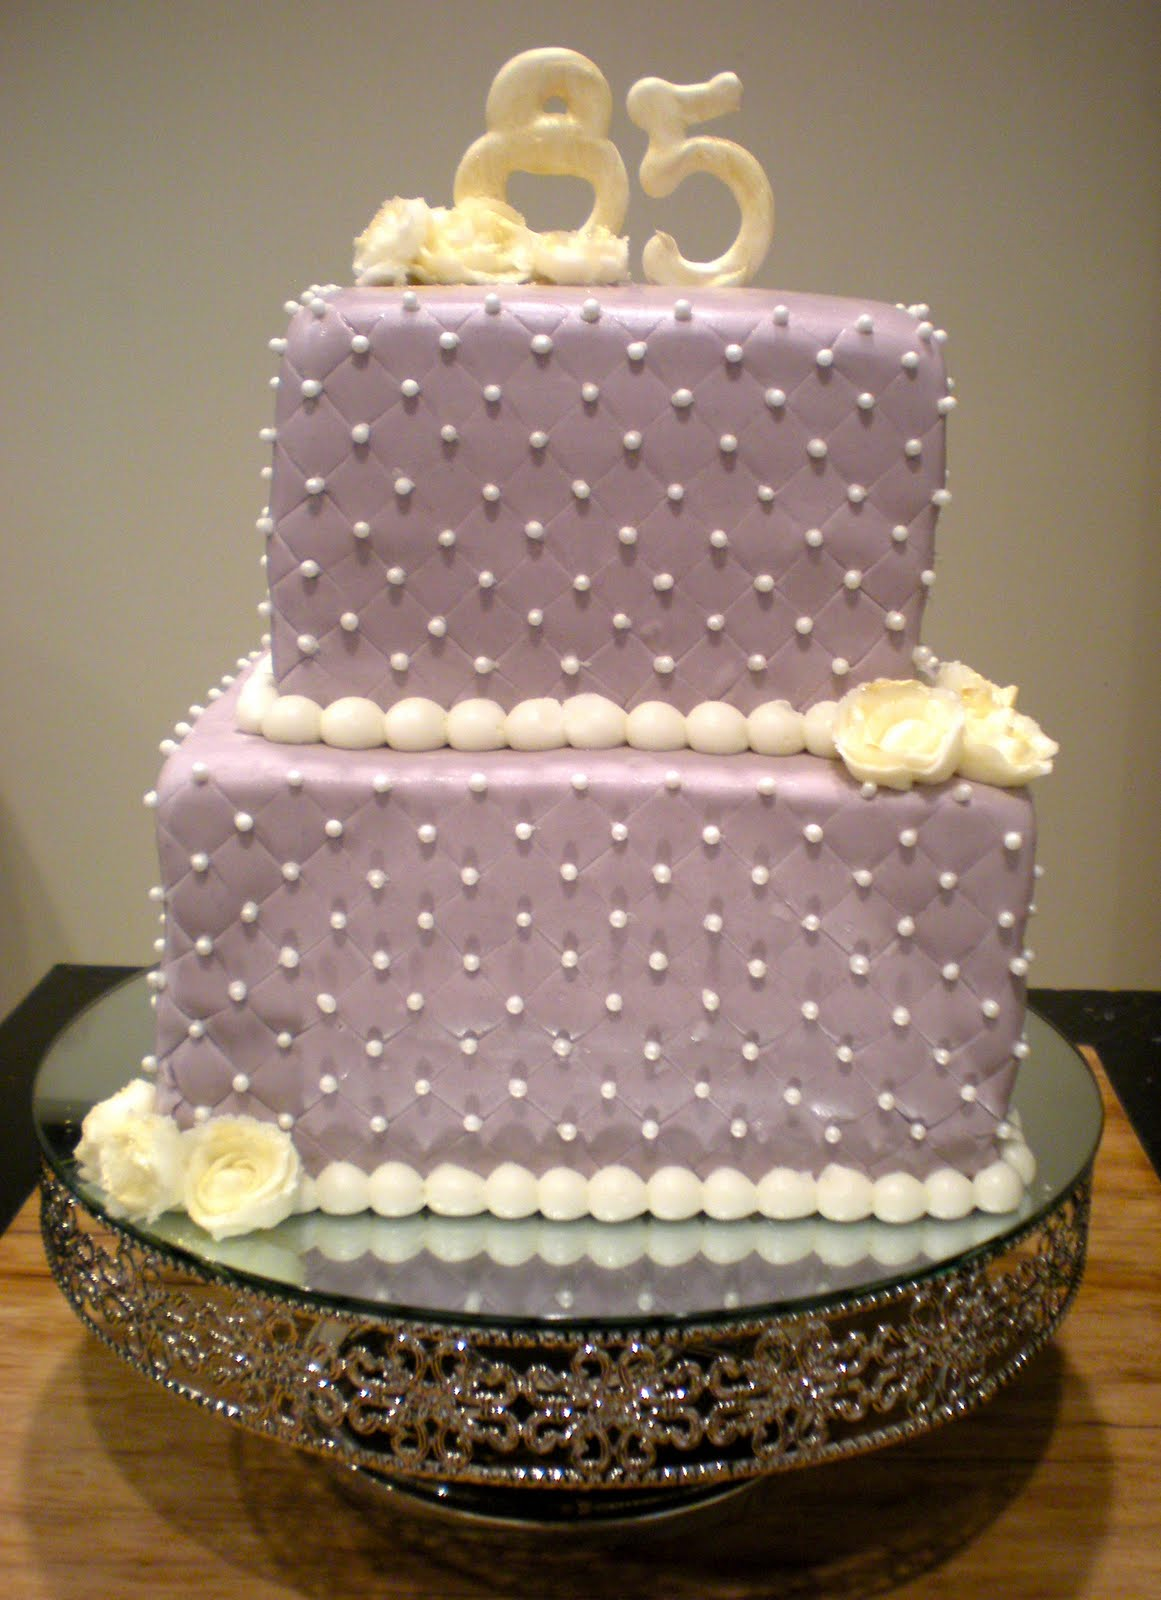 Chandelier Cakes By Natalie Peterson 85th Birthday Cake For My Cute